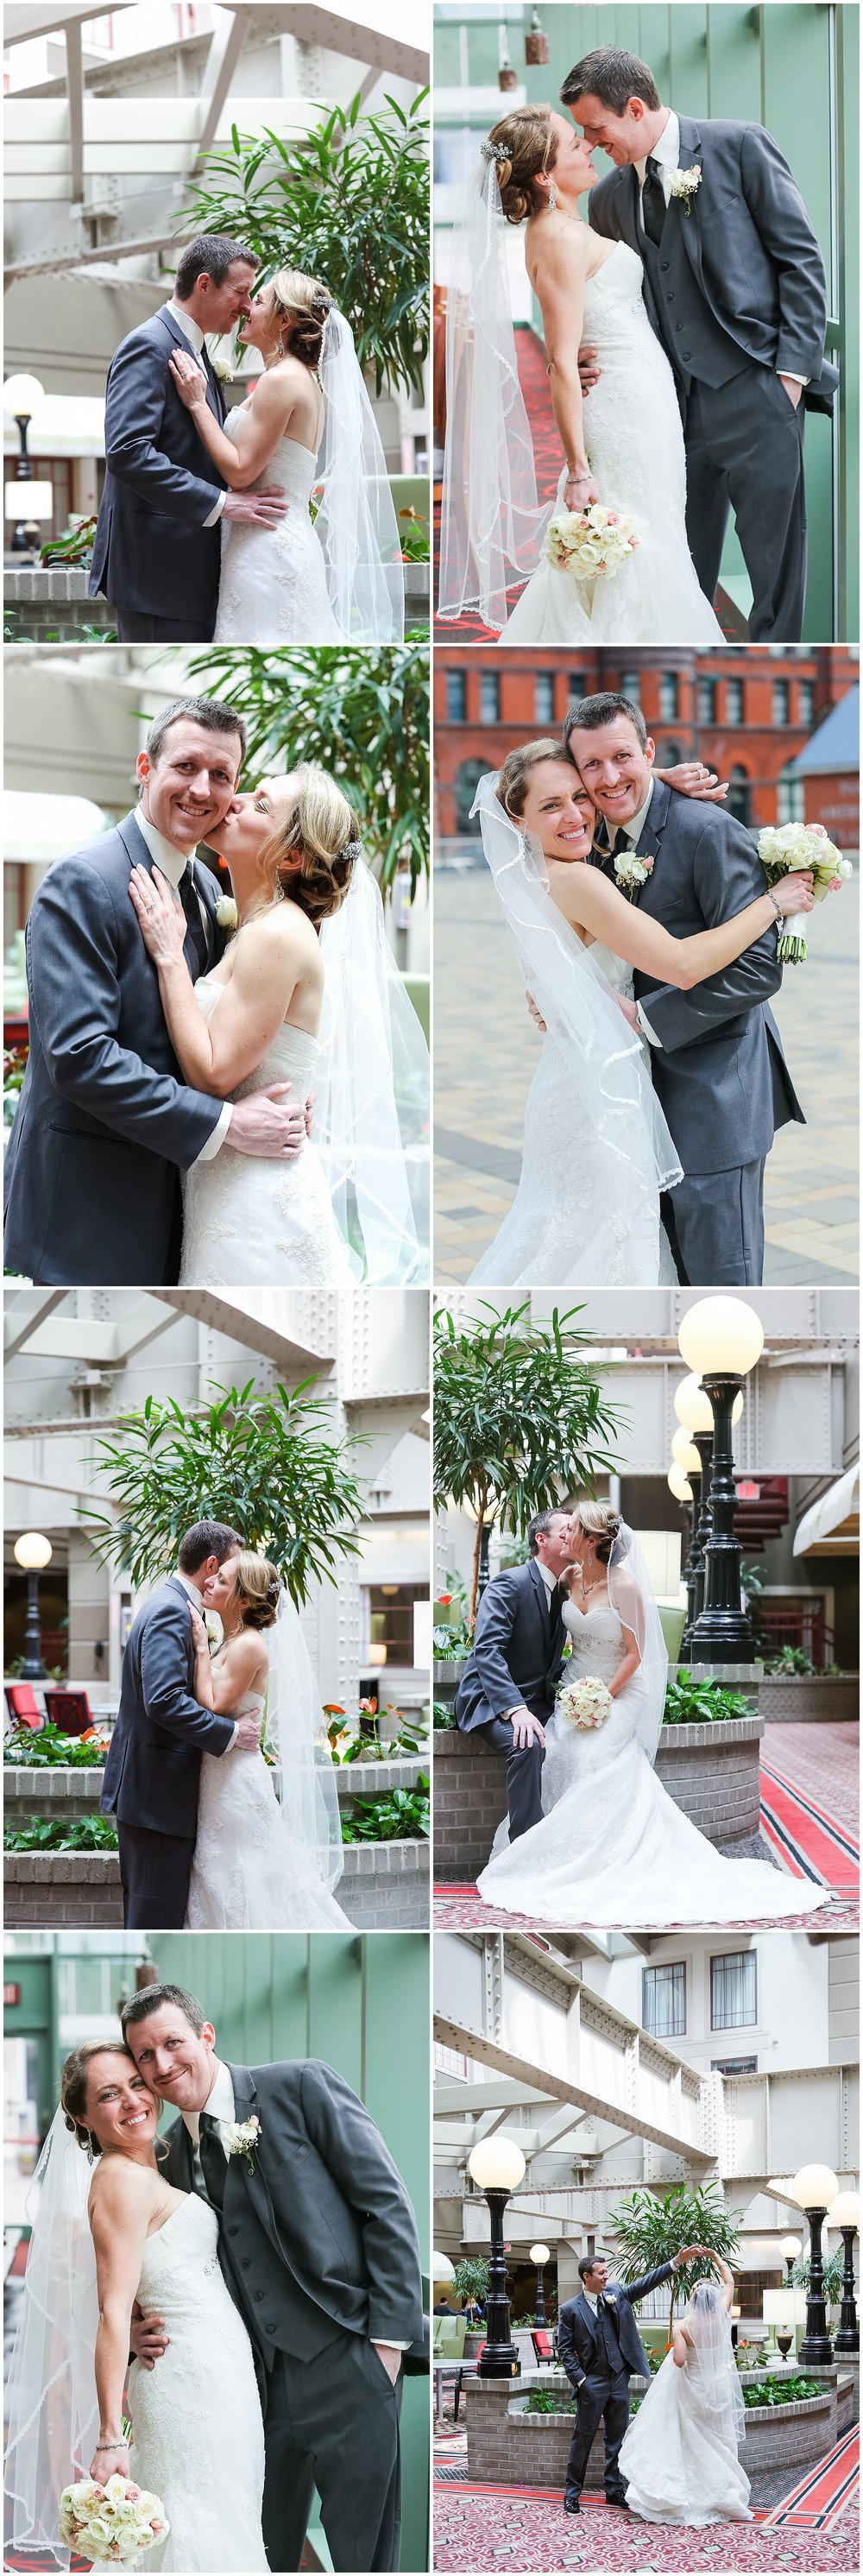 Crowne.Plaza.Indianapolis.Wedding.8.jpg